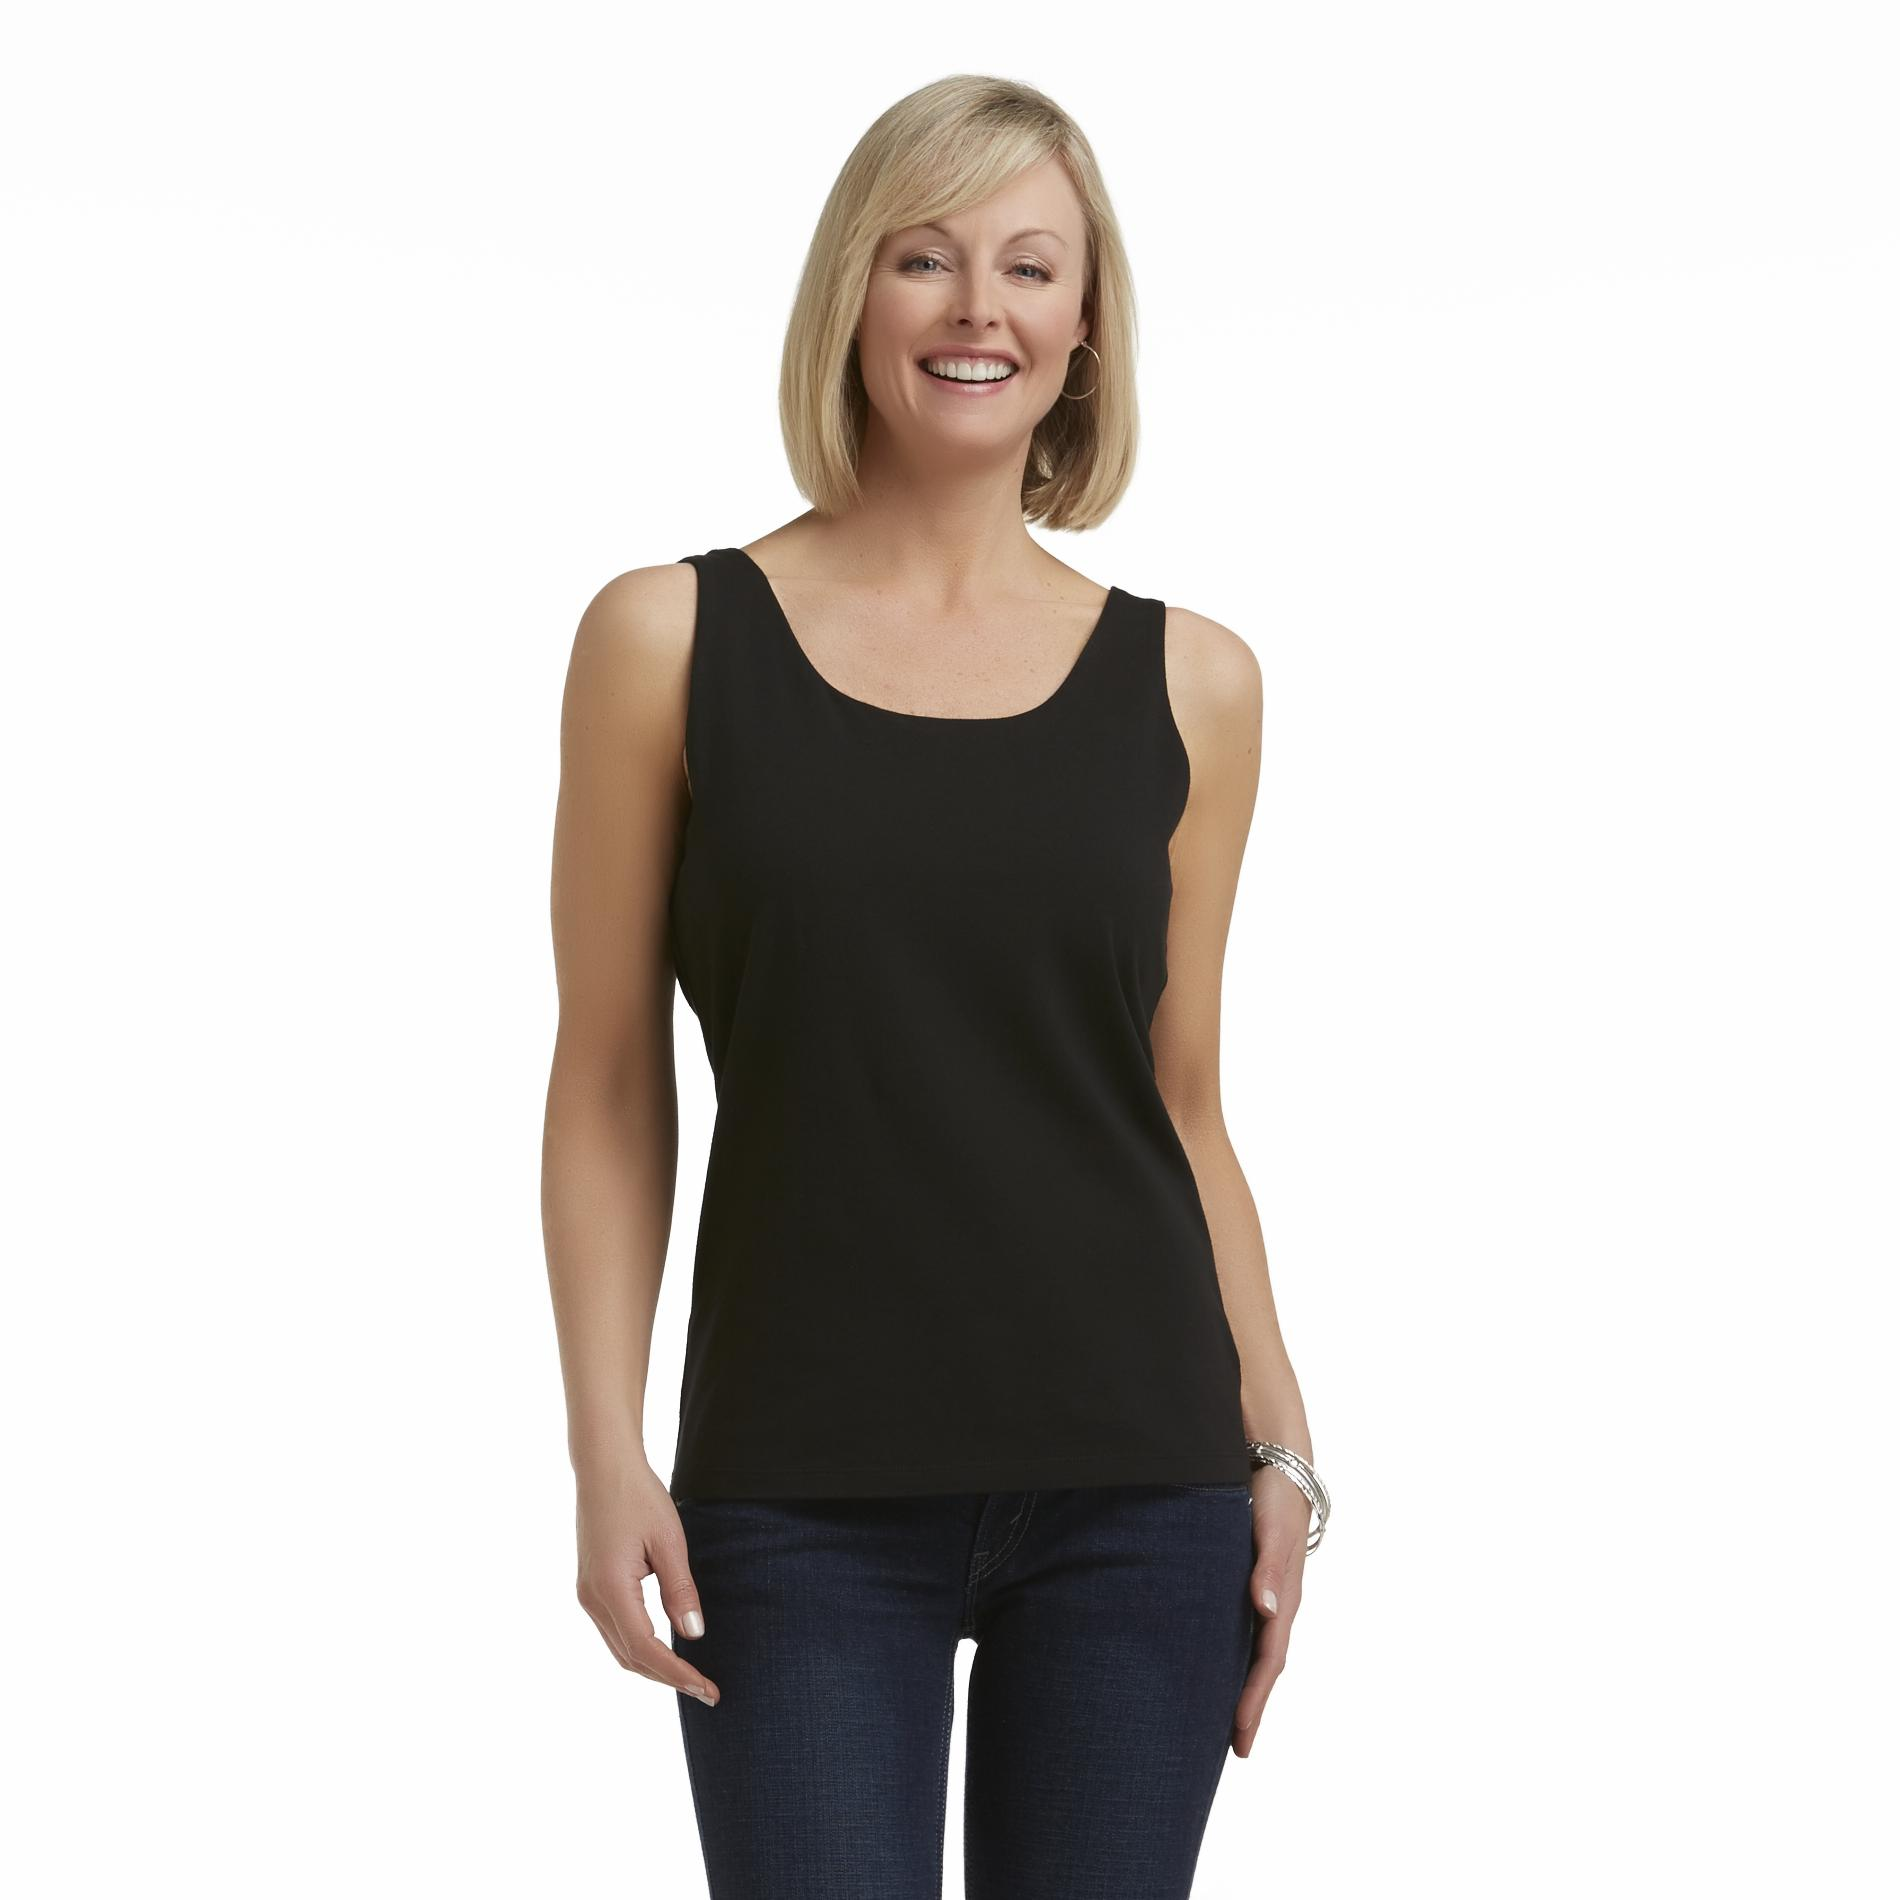 Laura Scott Women's Tank Top with Built-In Shelf Bra at Sears.com